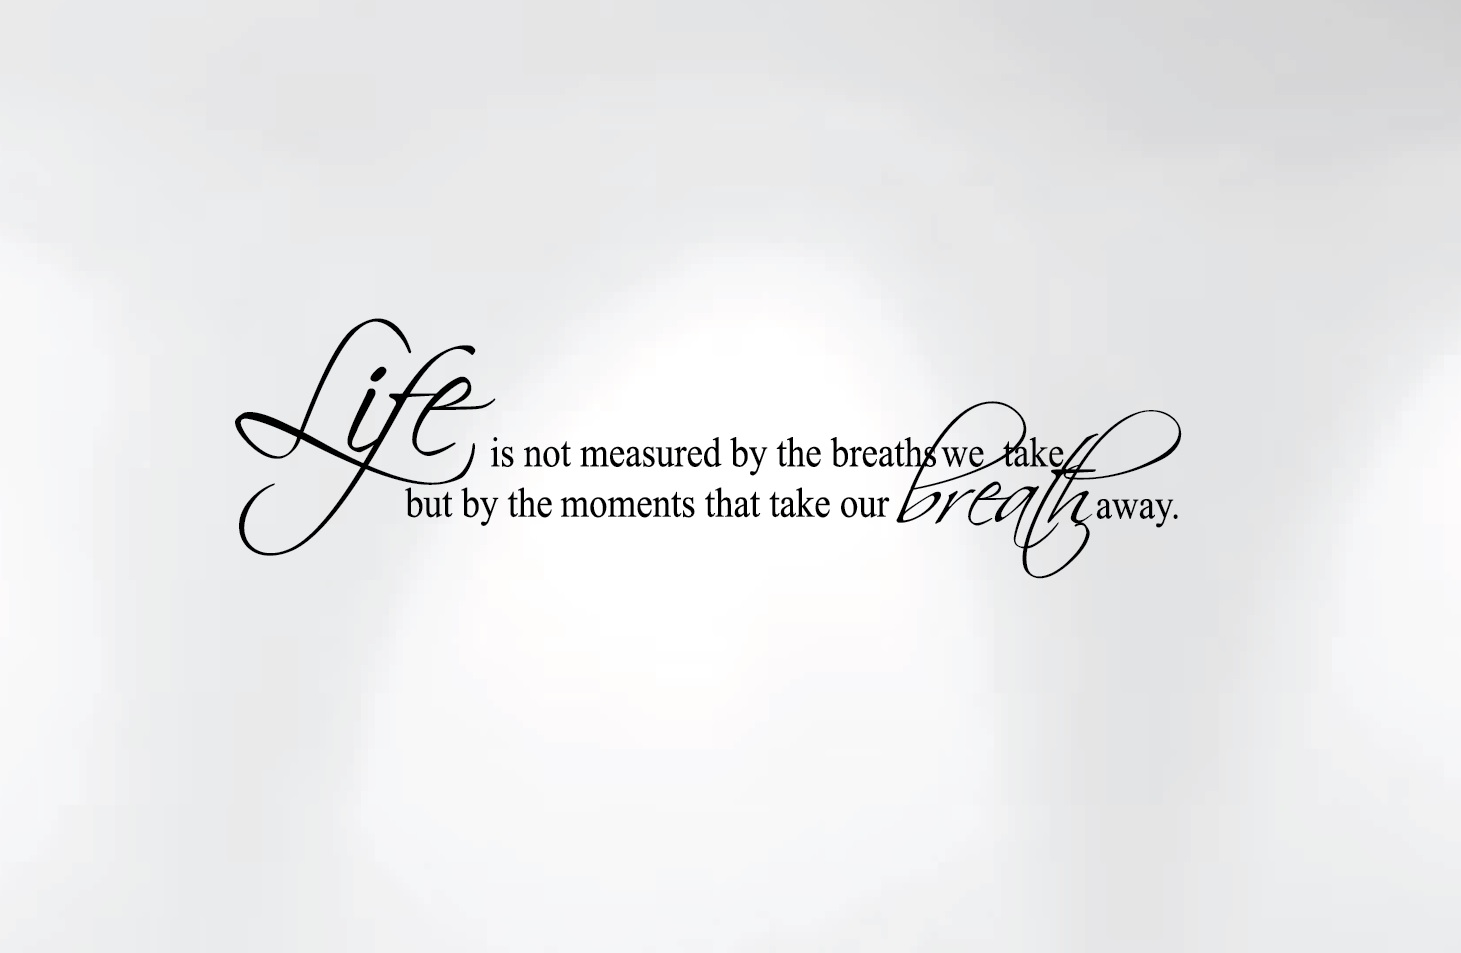 Captivating Life Moments Wall Quote Decal 1236 Black